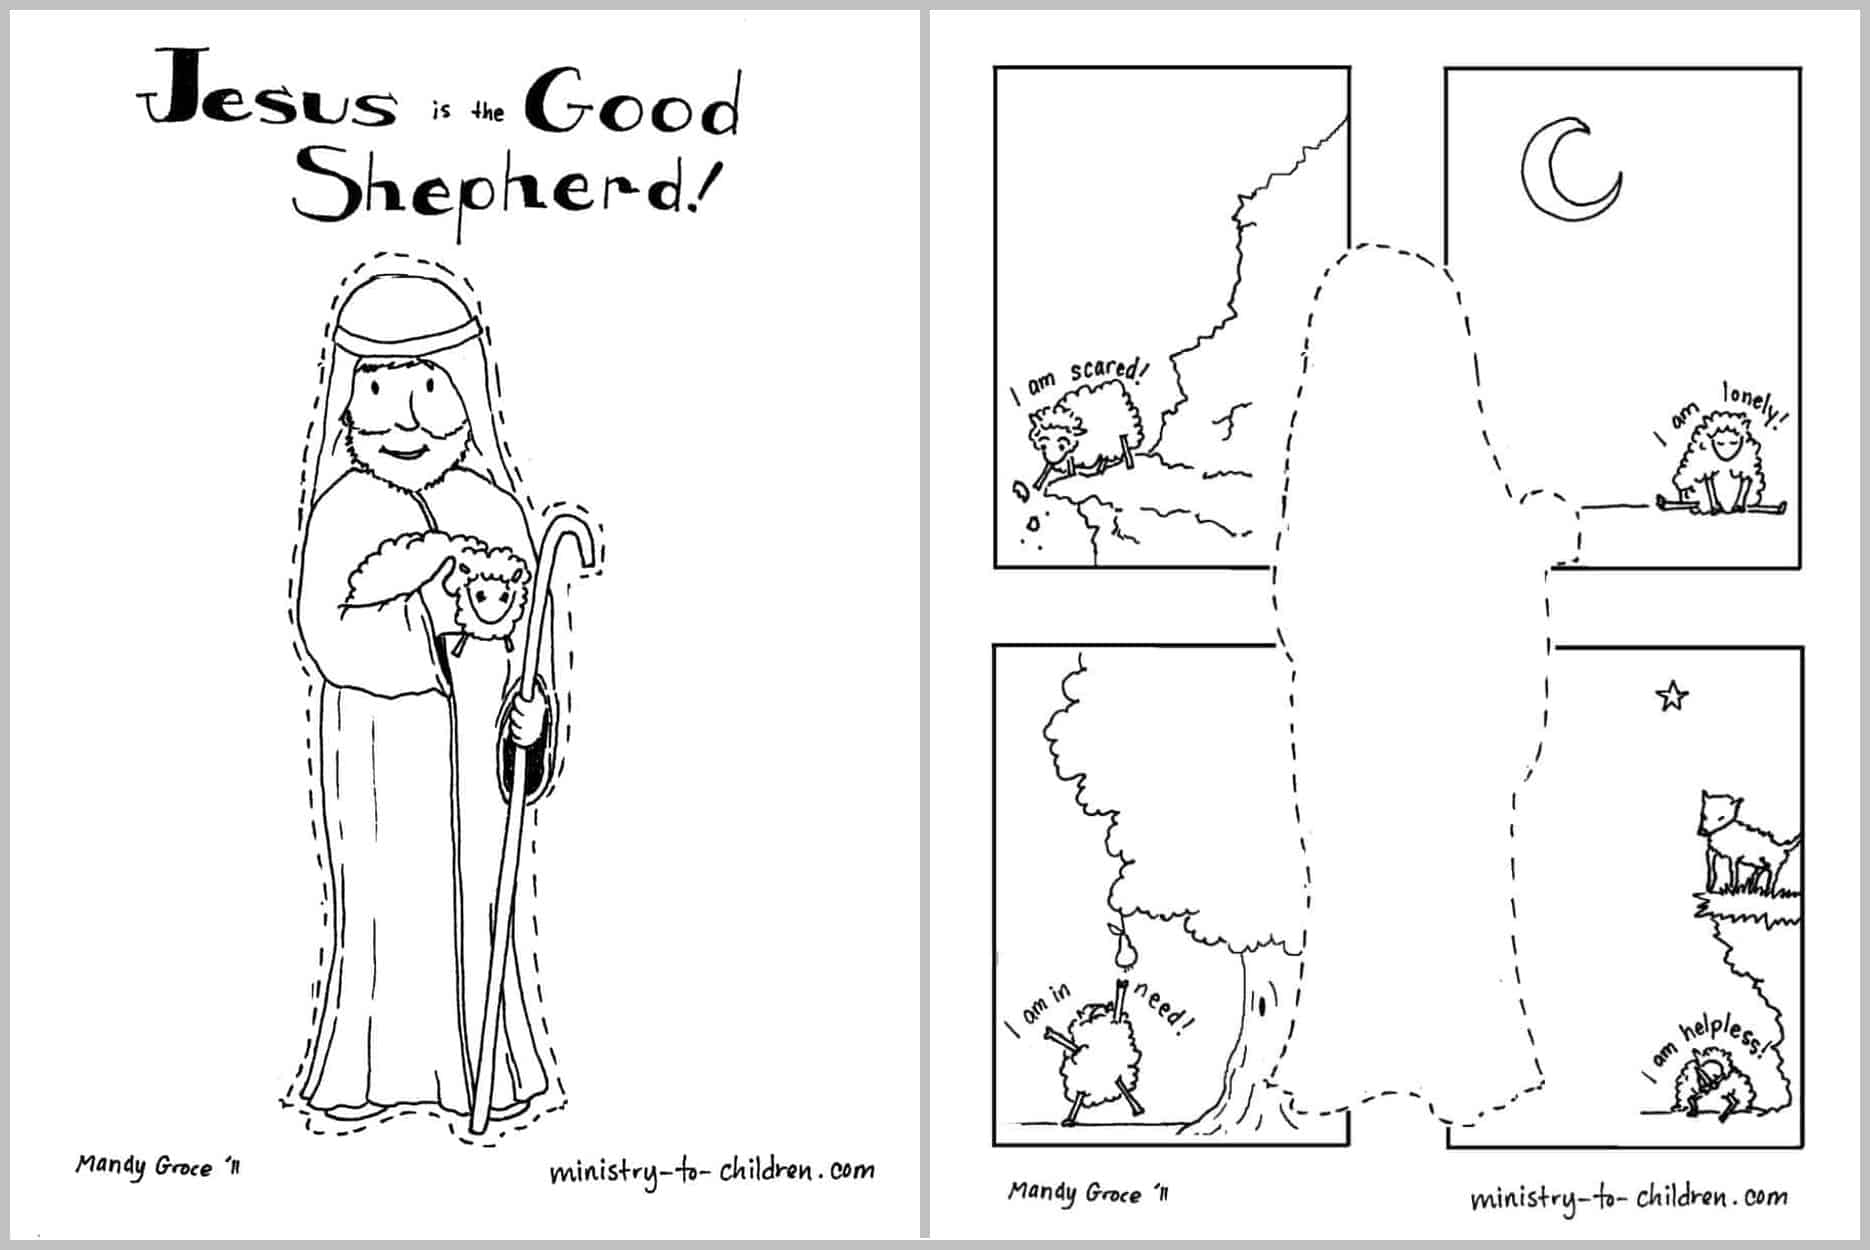 jesus the sheperd coloring pages | Jesus is the Good Shepherd [Coloring Page] Easy Print ...